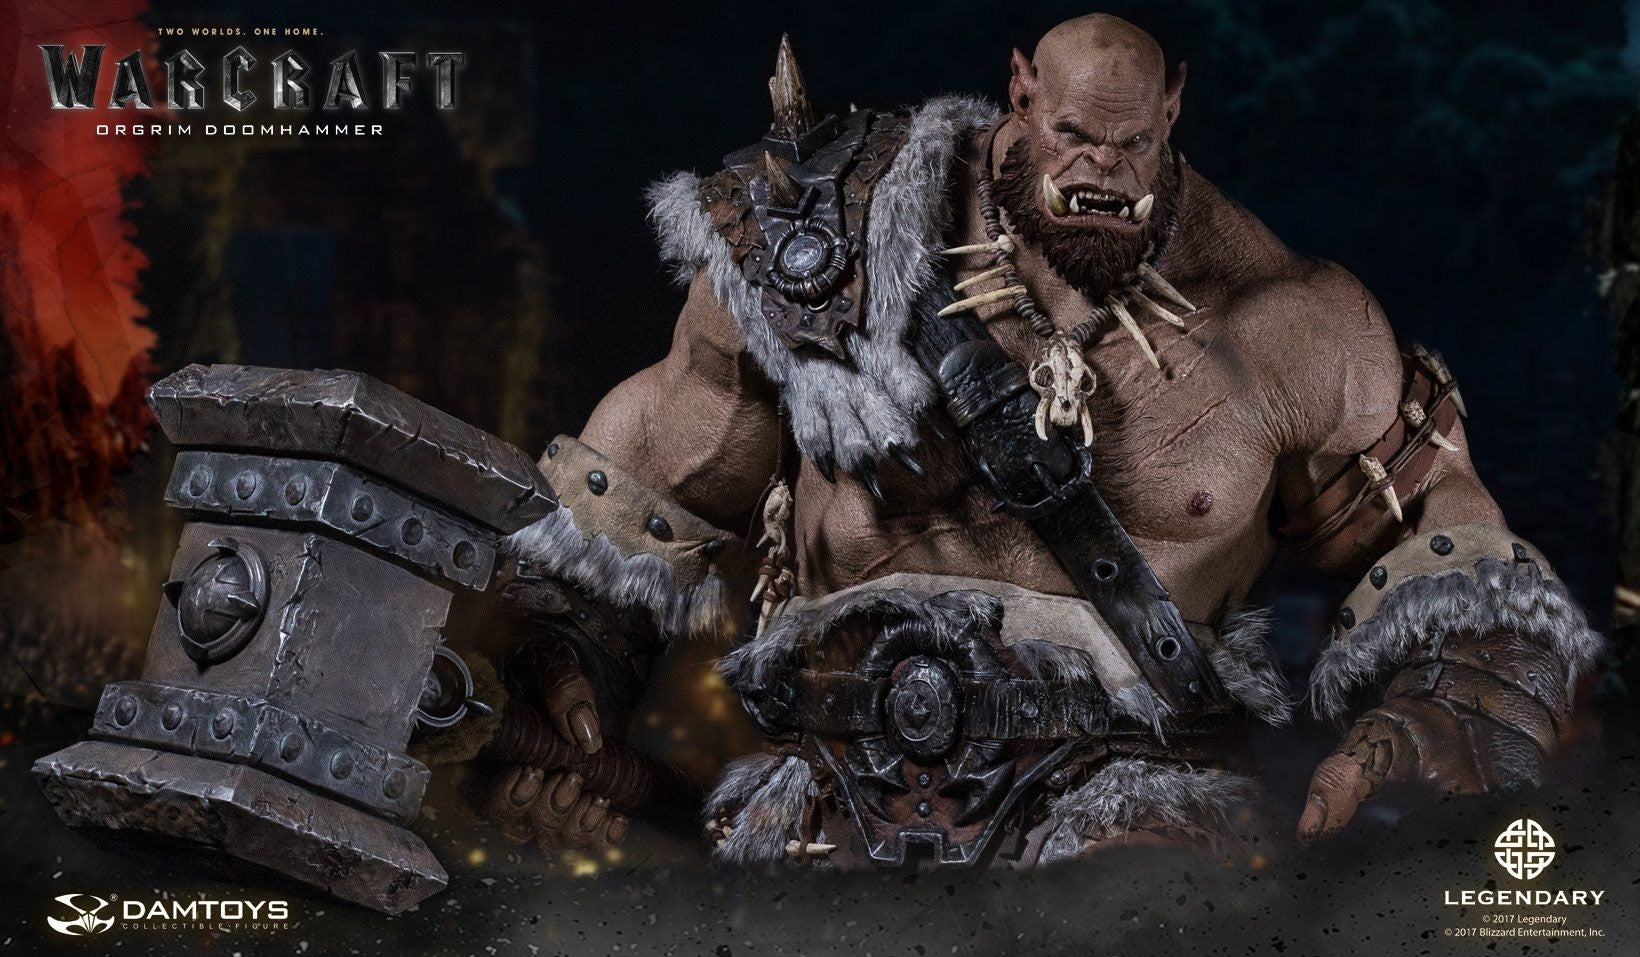 Dam Toys - DMLW02 - Epic Series - Warcraft - Orgrim Doomhammer Premium Statue - Marvelous Toys - 10